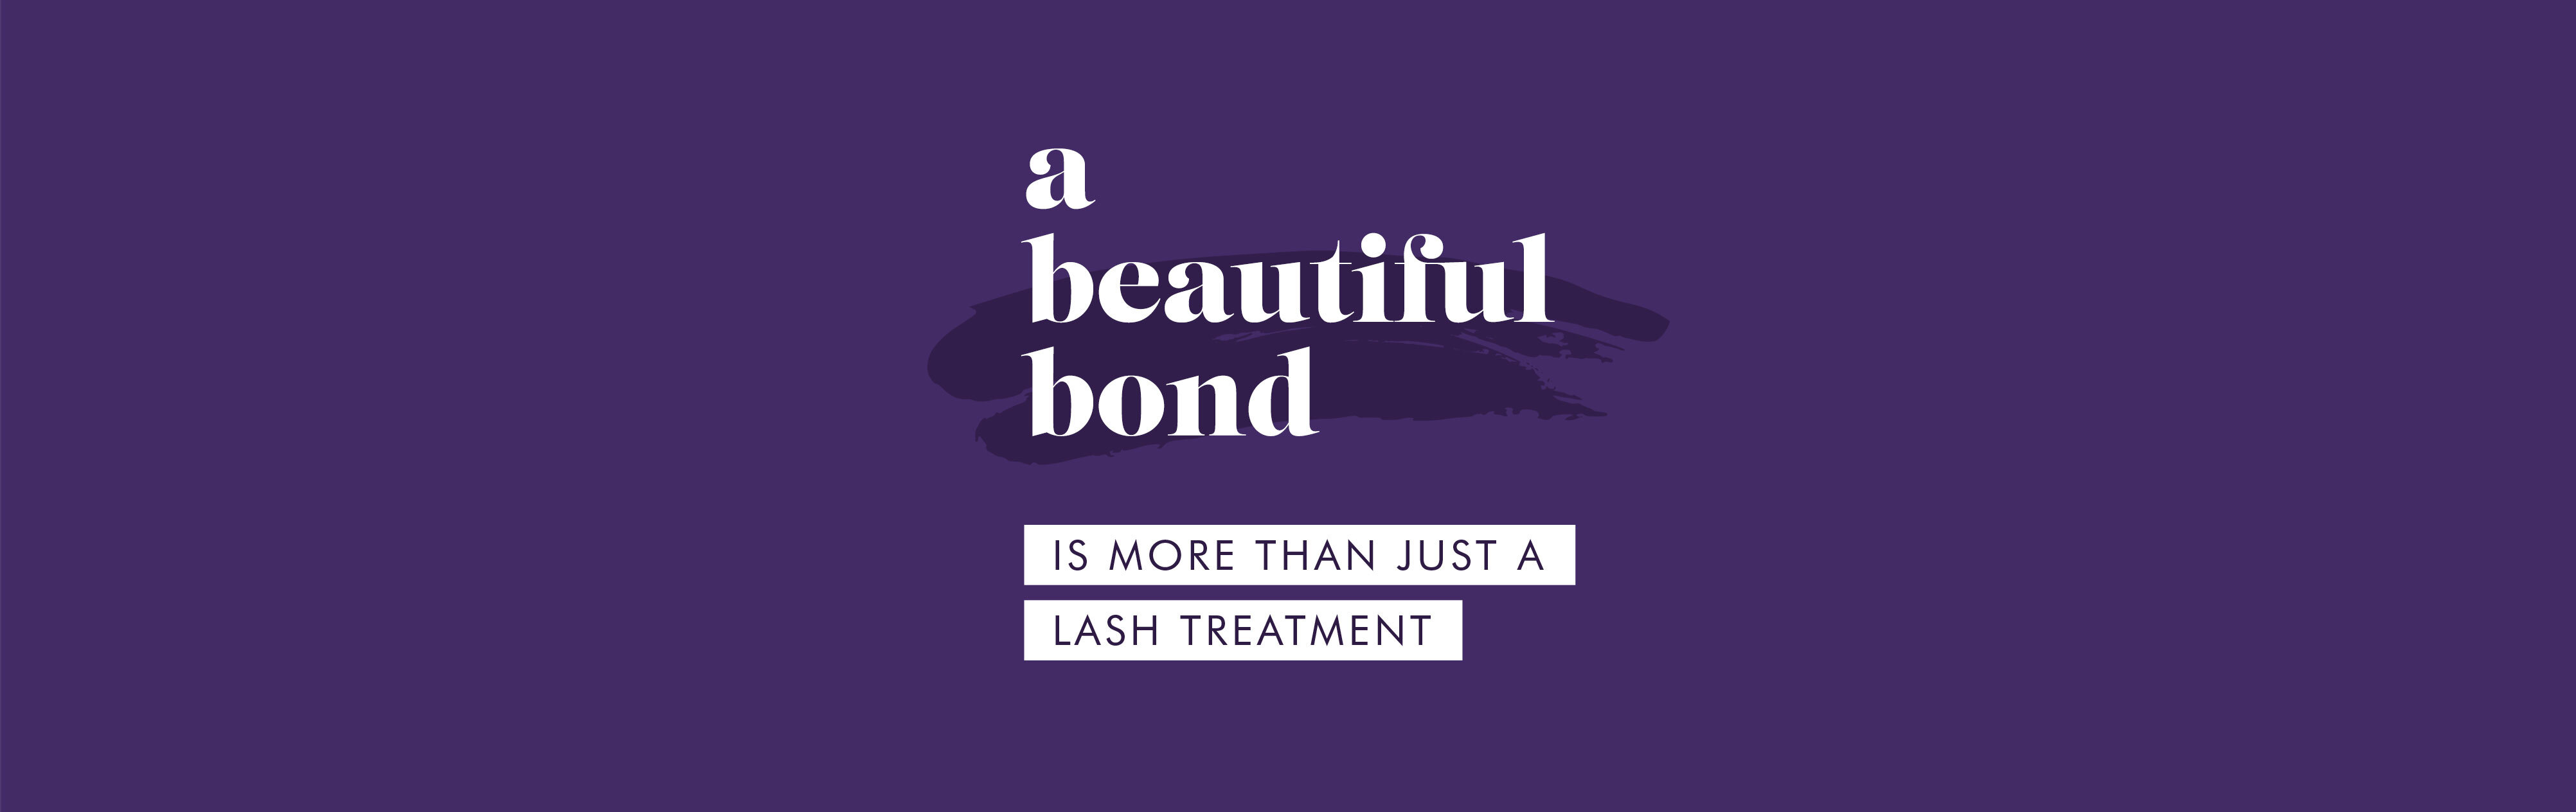 A beautiful bond is more than just a lash treatment